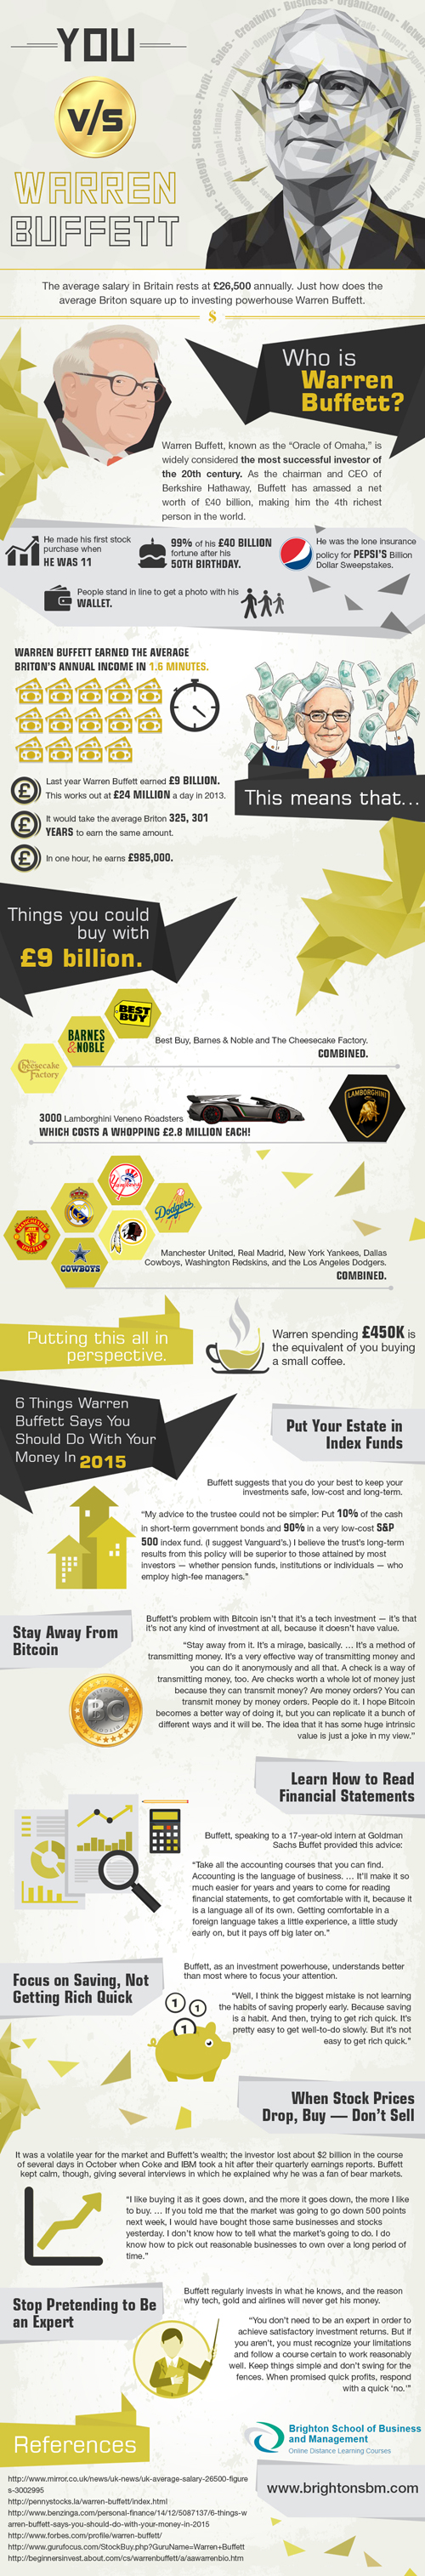 Infographic - You vs. Warren Buffett